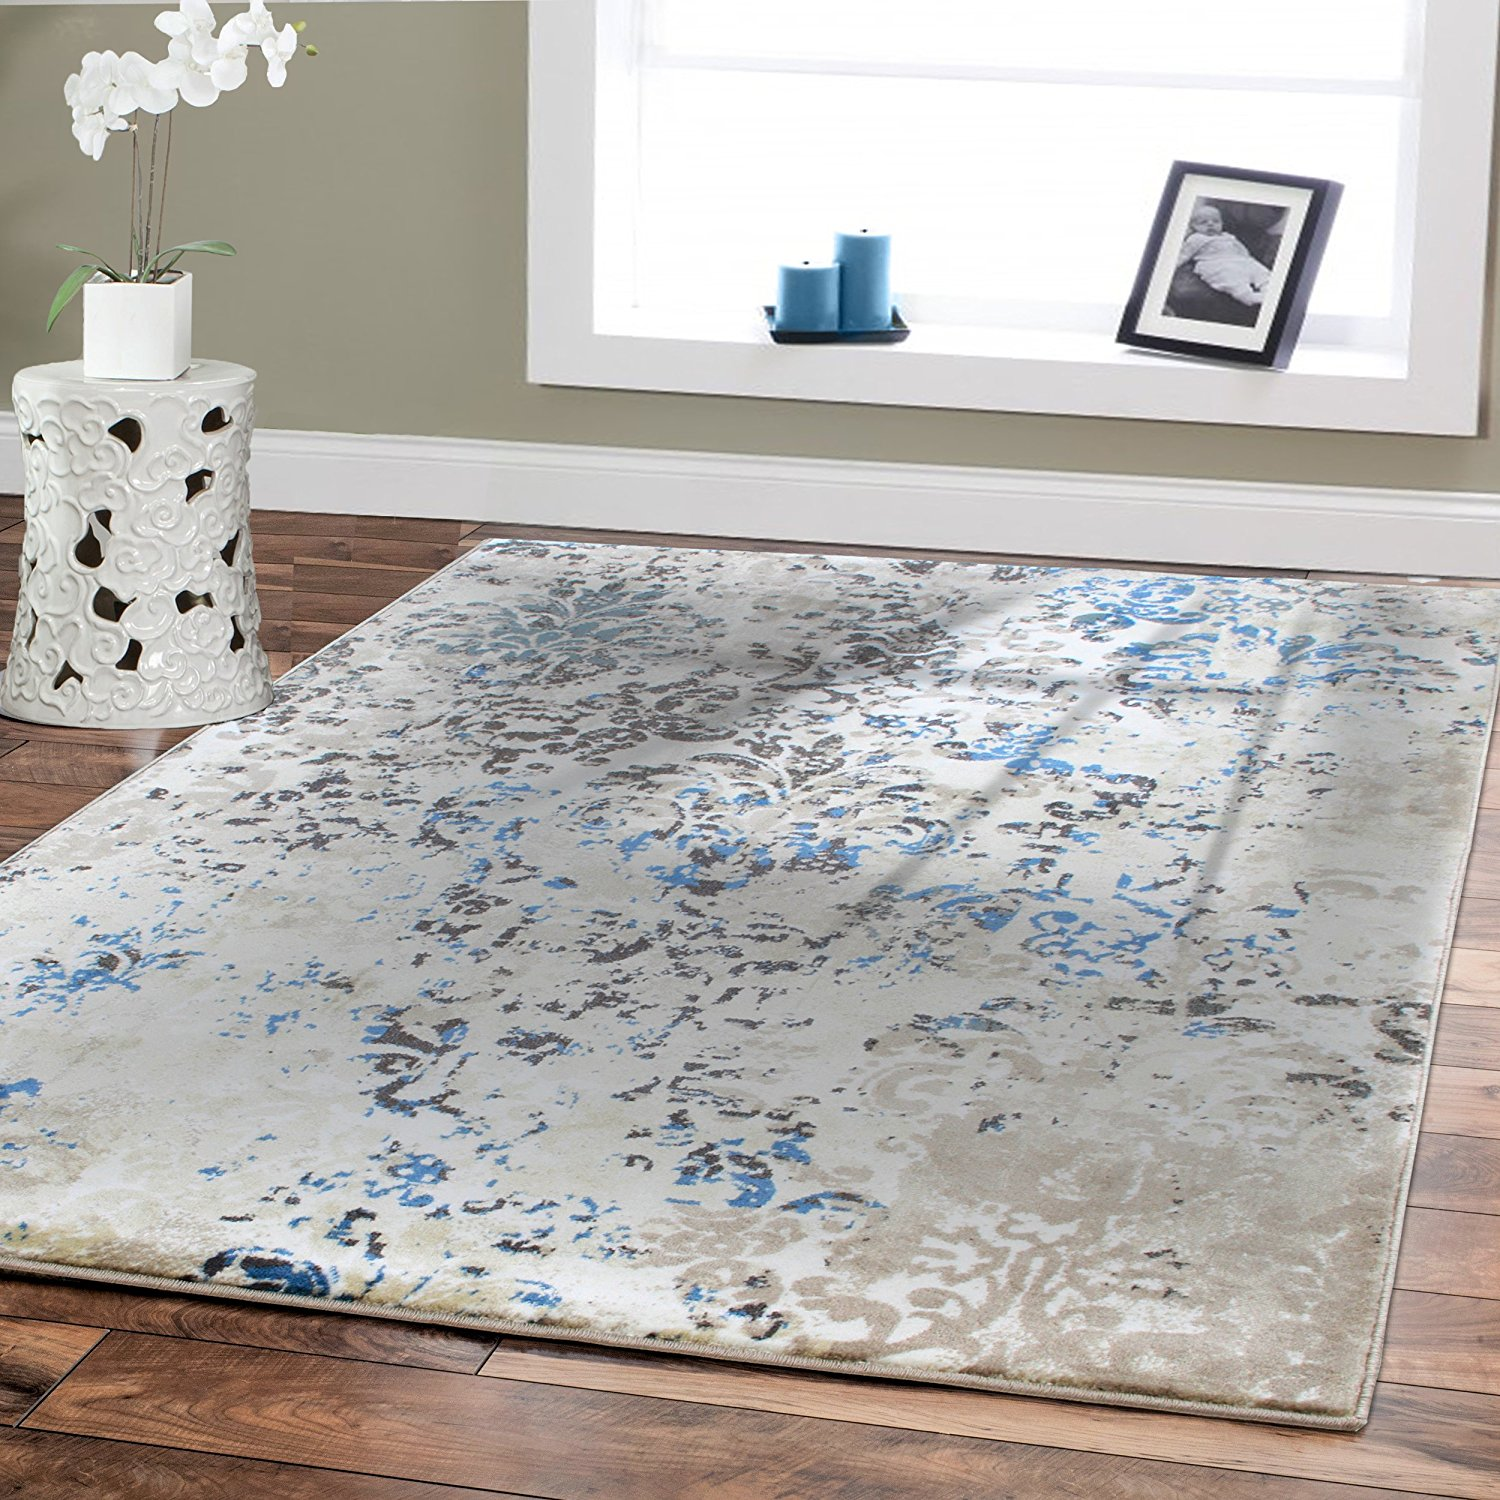 Luxury High Quality Rugs For Living Room 5x8 Cream Blue